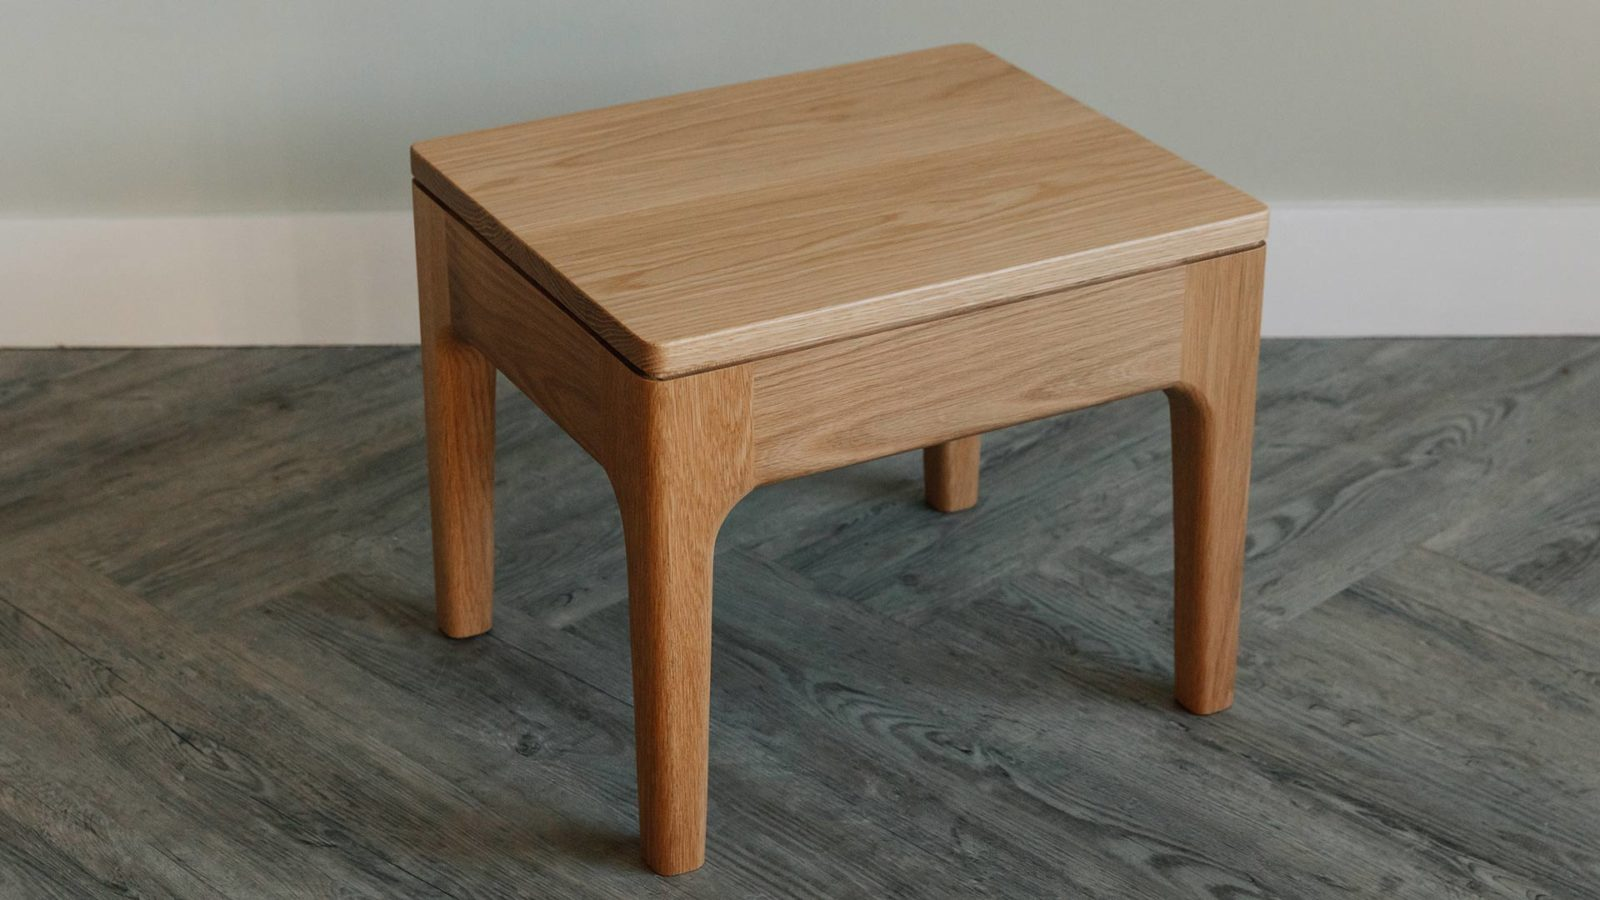 Camden solid wooden bedside table - shown in oak but available in a choice of wood